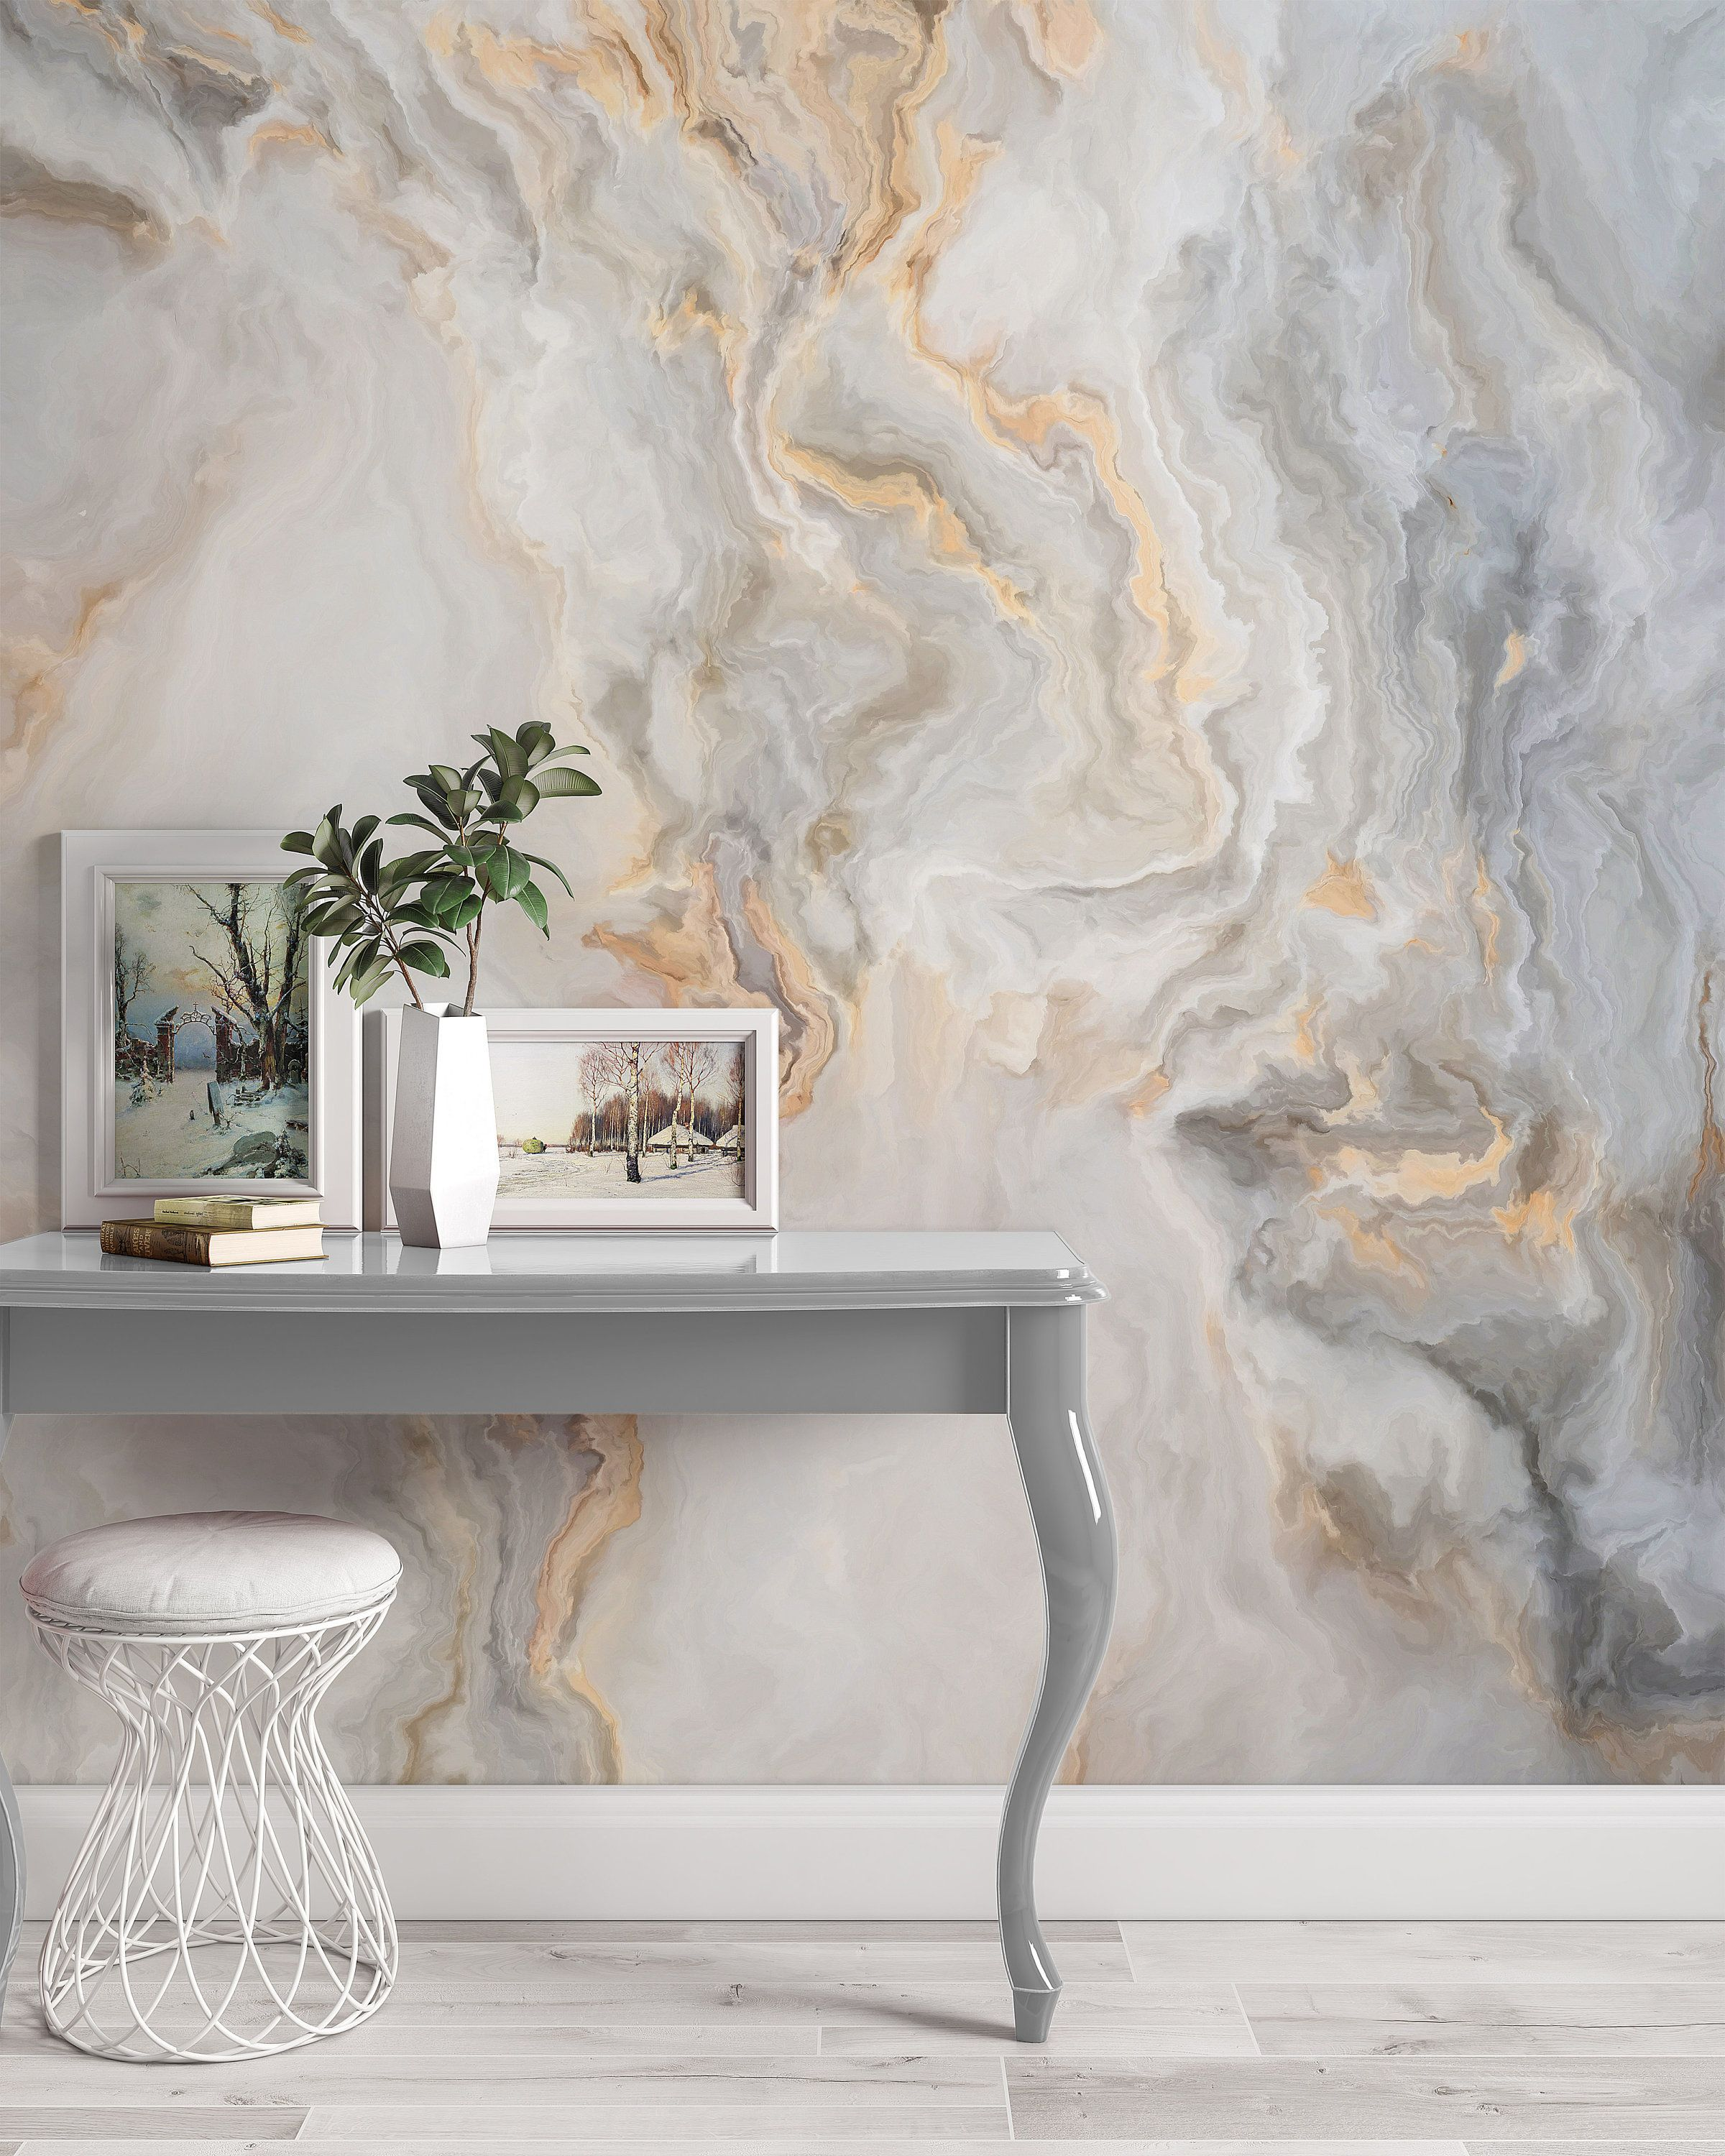 White Marble Pattern Curly Grey Golden Look Abstract Wallpaper Etsy Gold Abstract Wallpaper Marble Effect Wallpaper Gold Marble Wallpaper